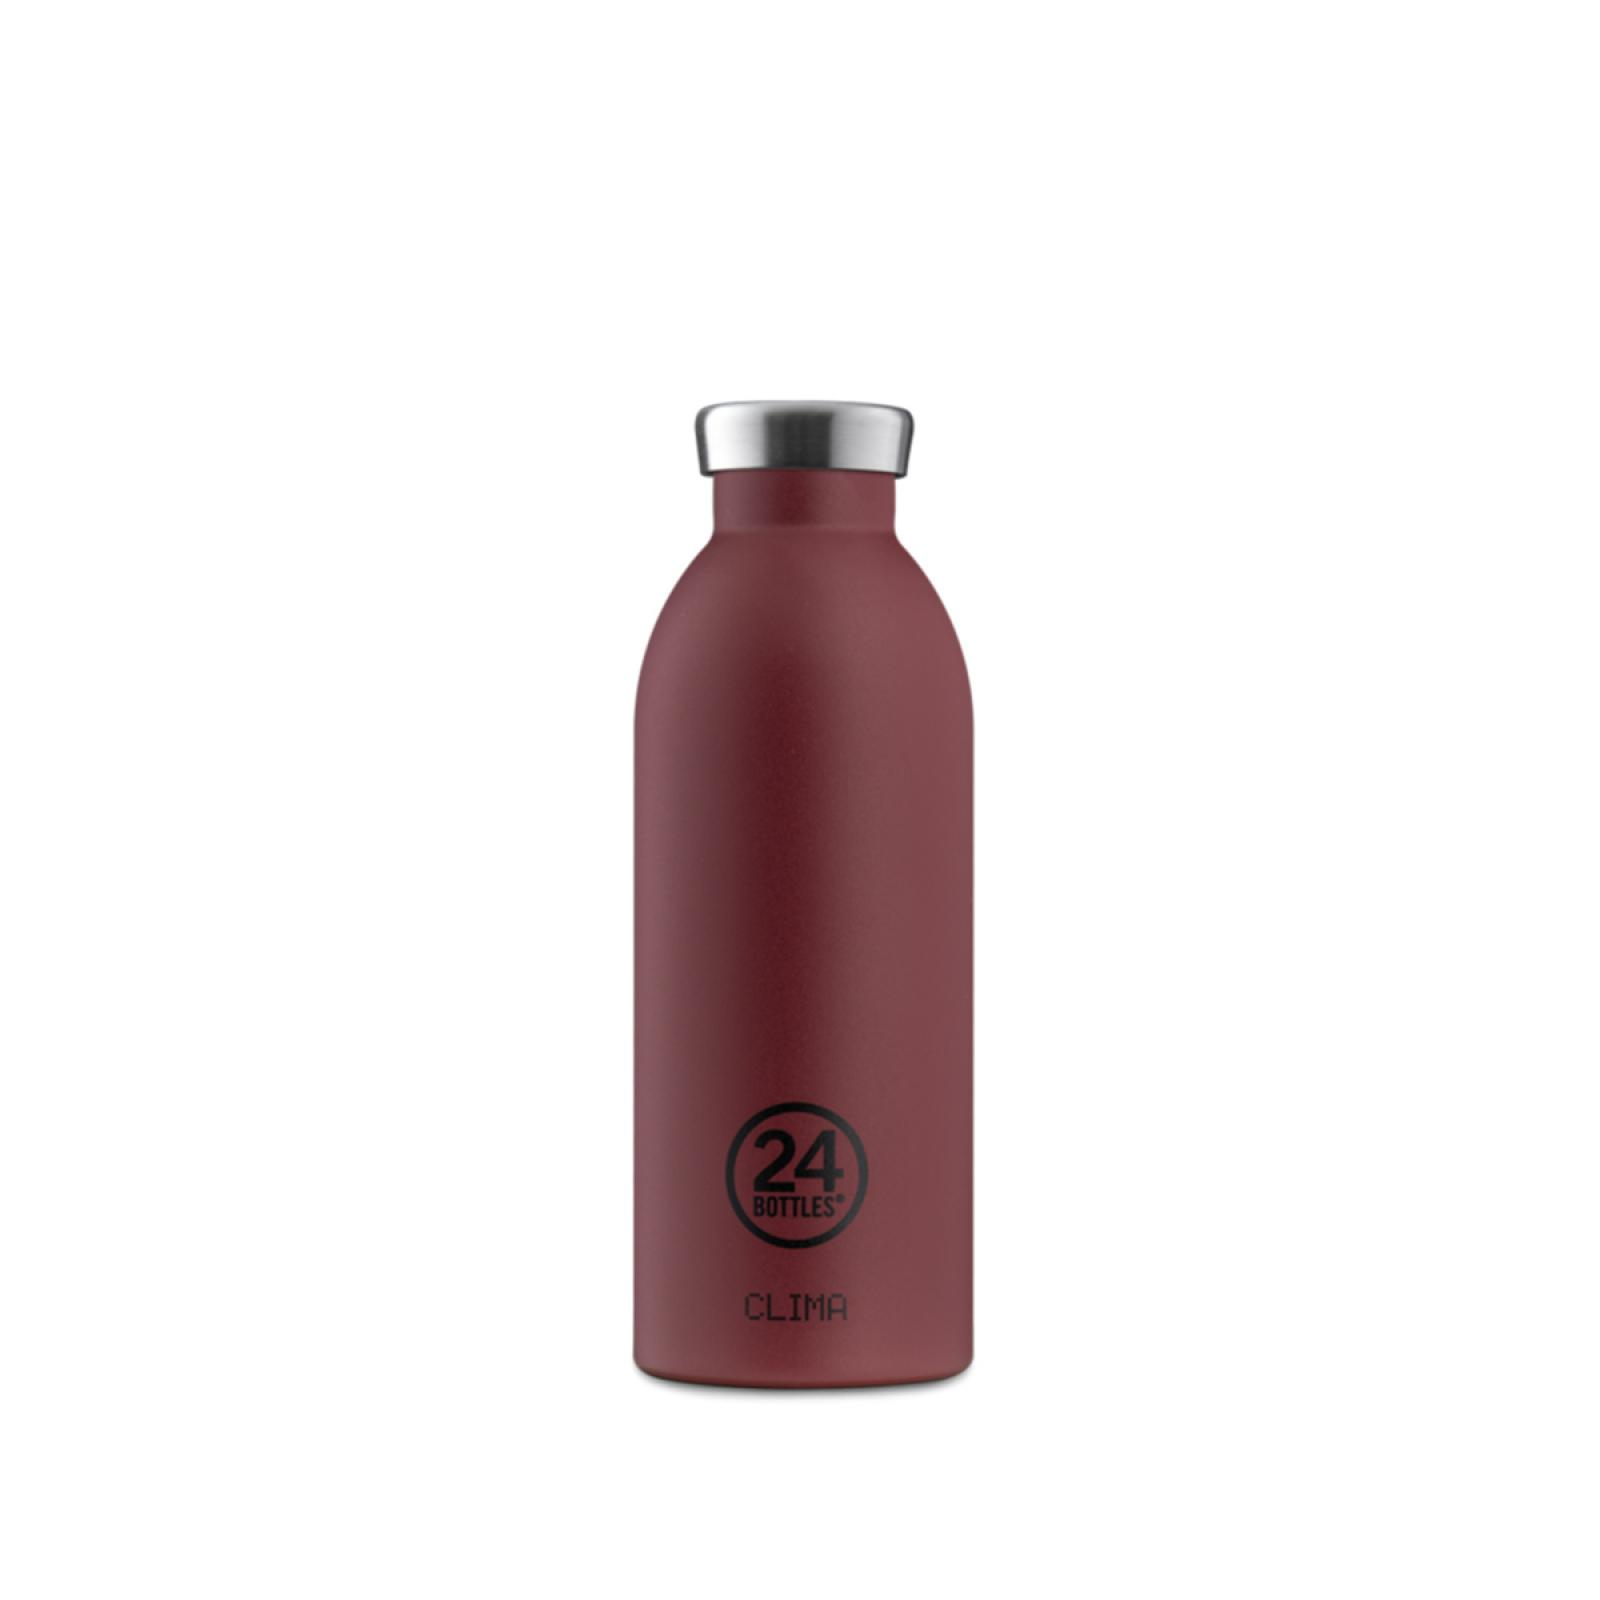 24BO Clima Bottle Heart Country Red 500 ml - 1